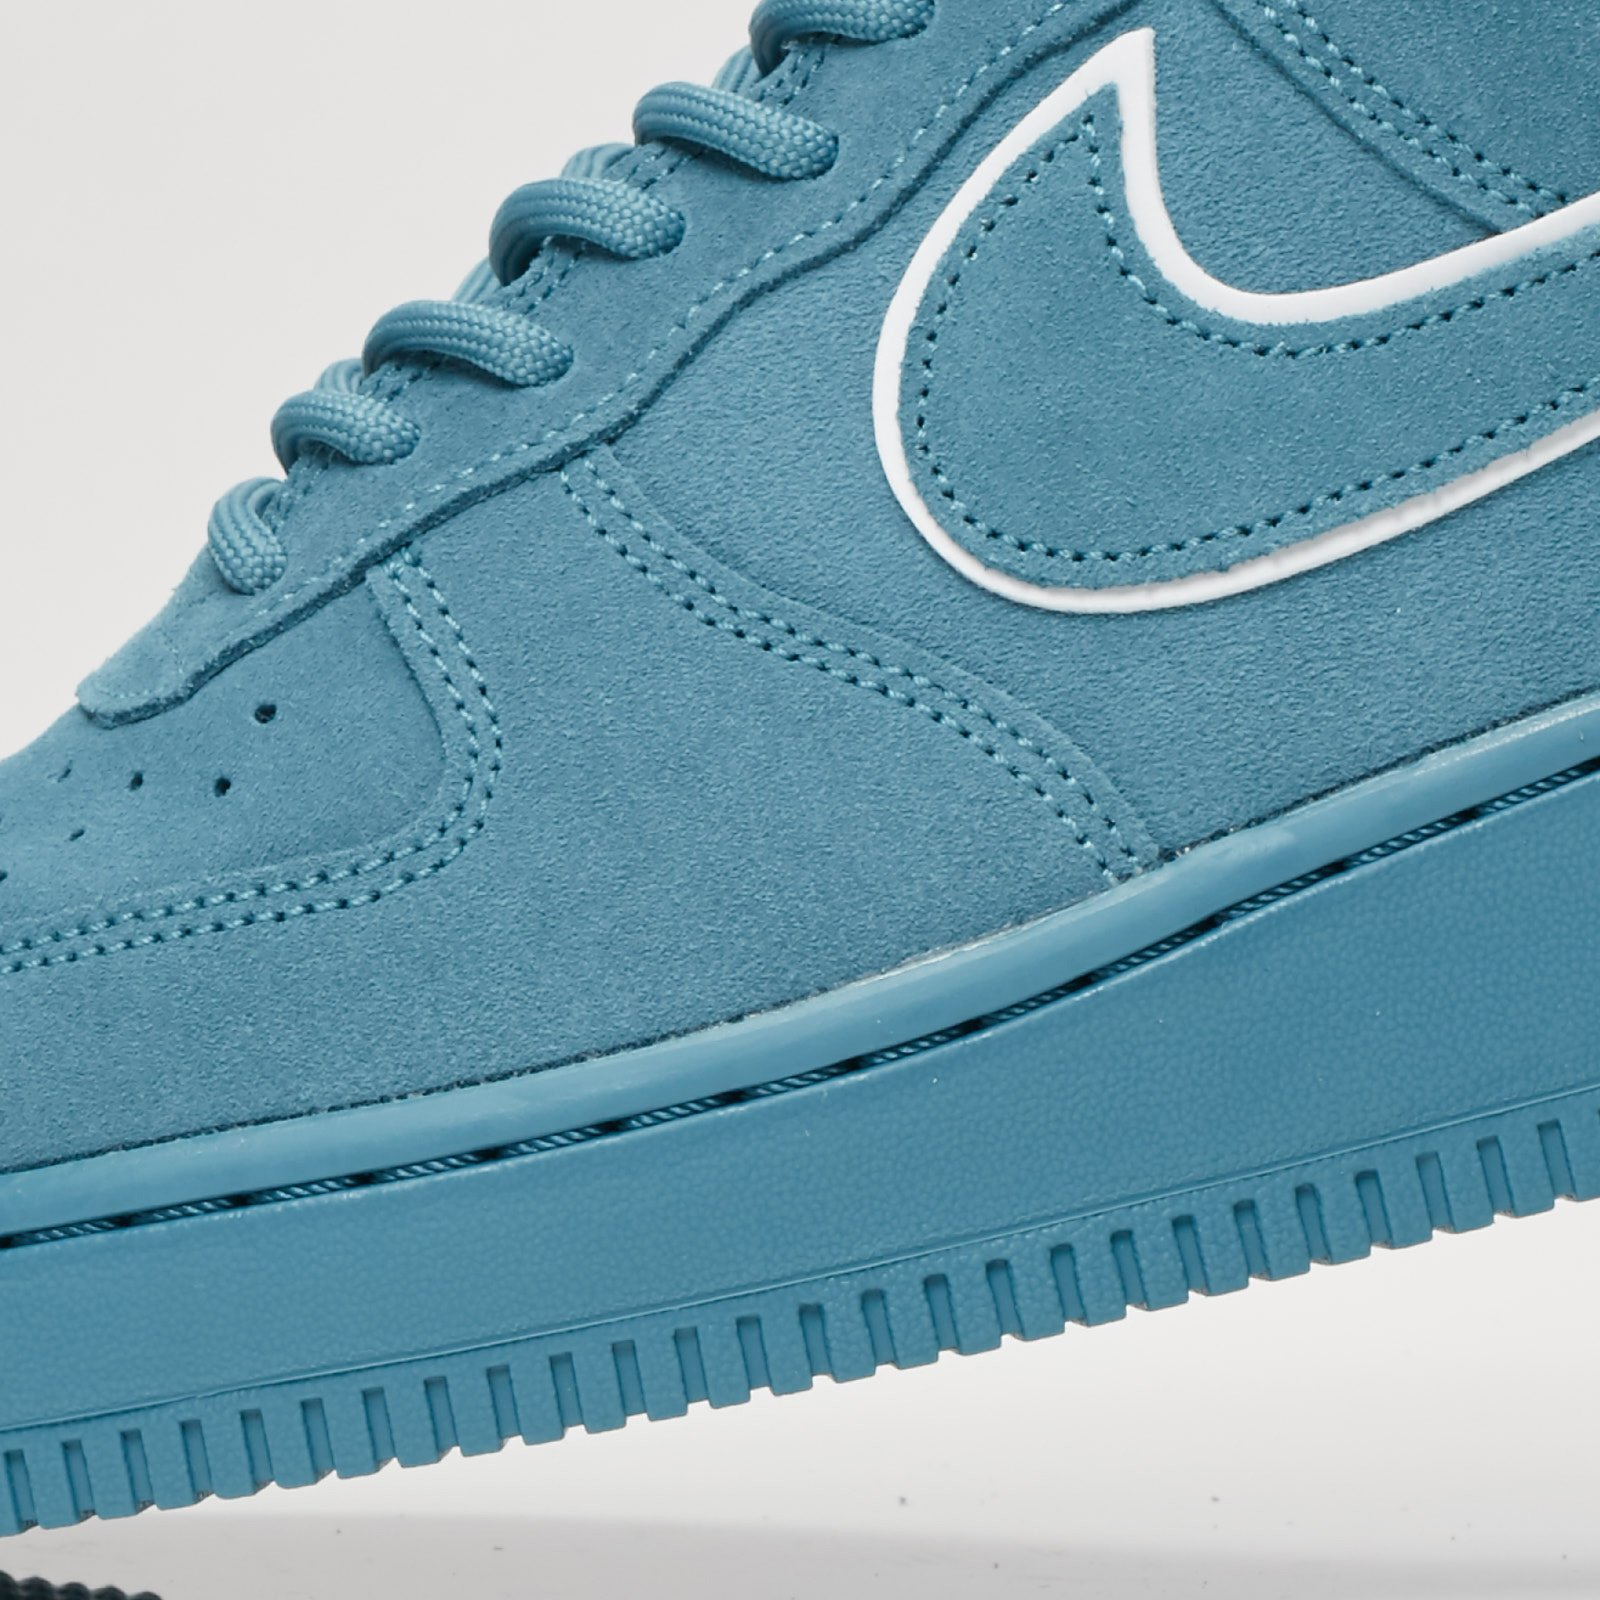 Nike Air Force 1 07 lv8 Suede - Aa1117